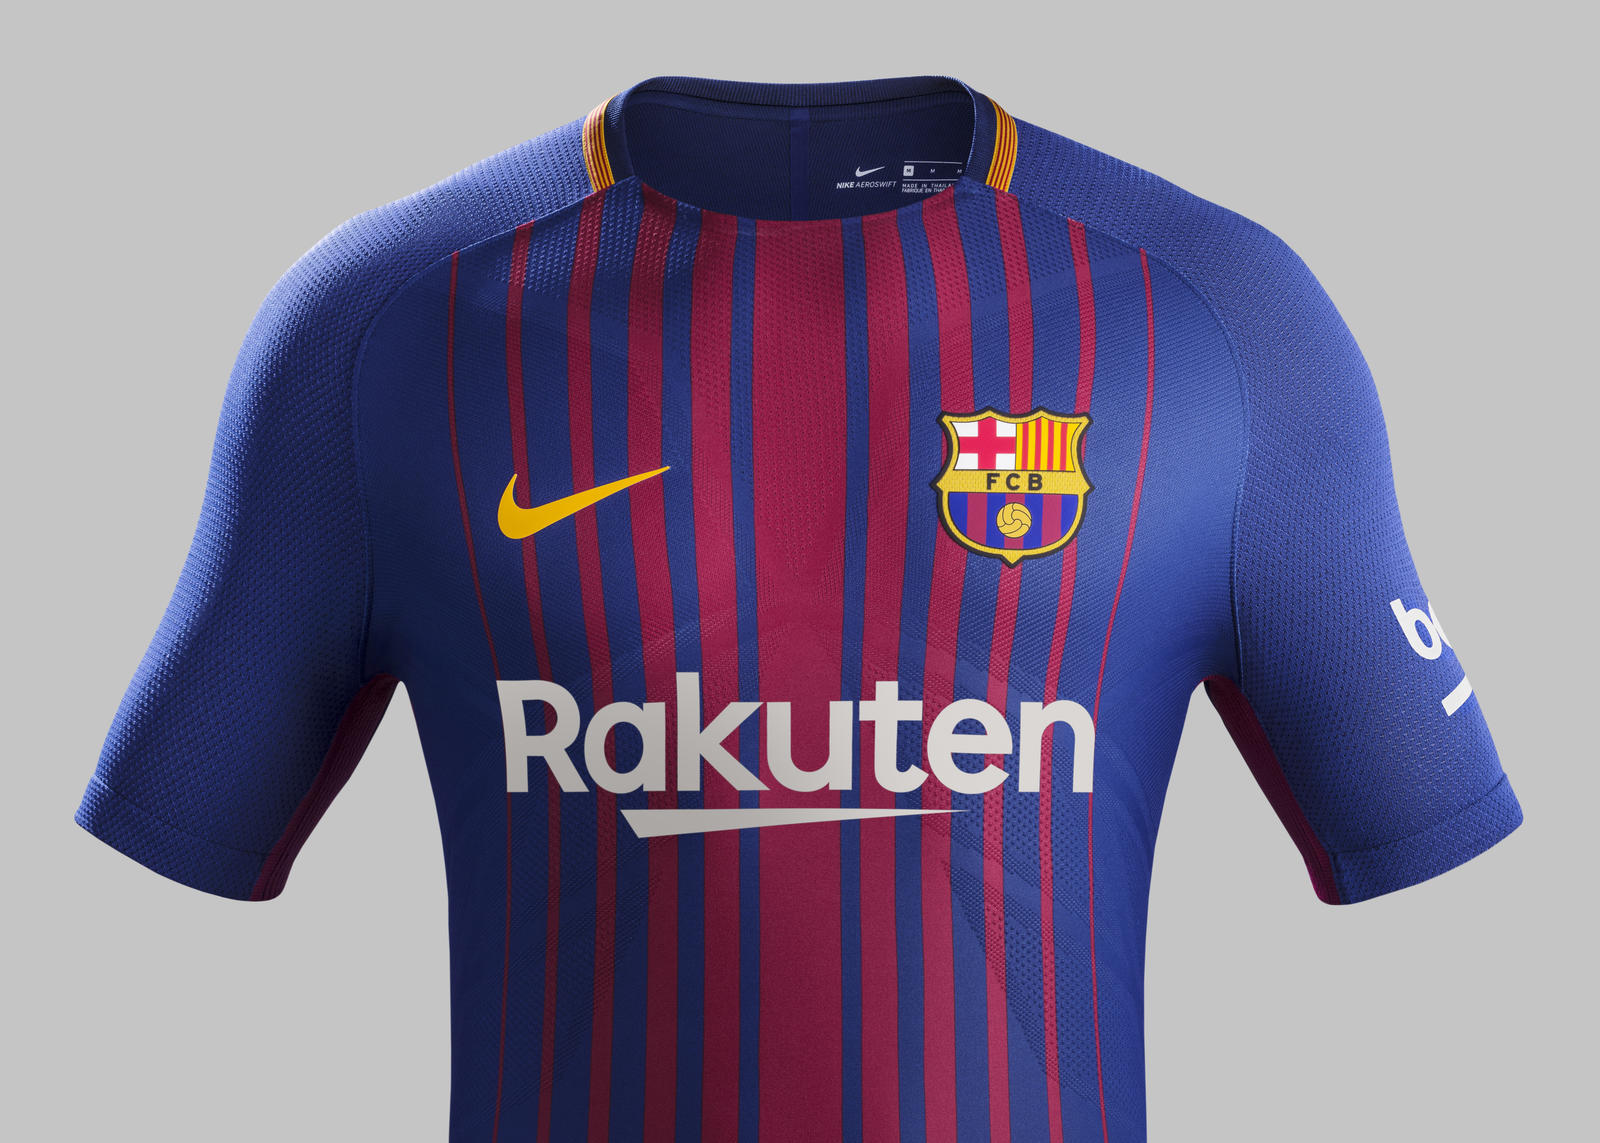 Fy17 18 club kits h front match fcb r rectangle 1600